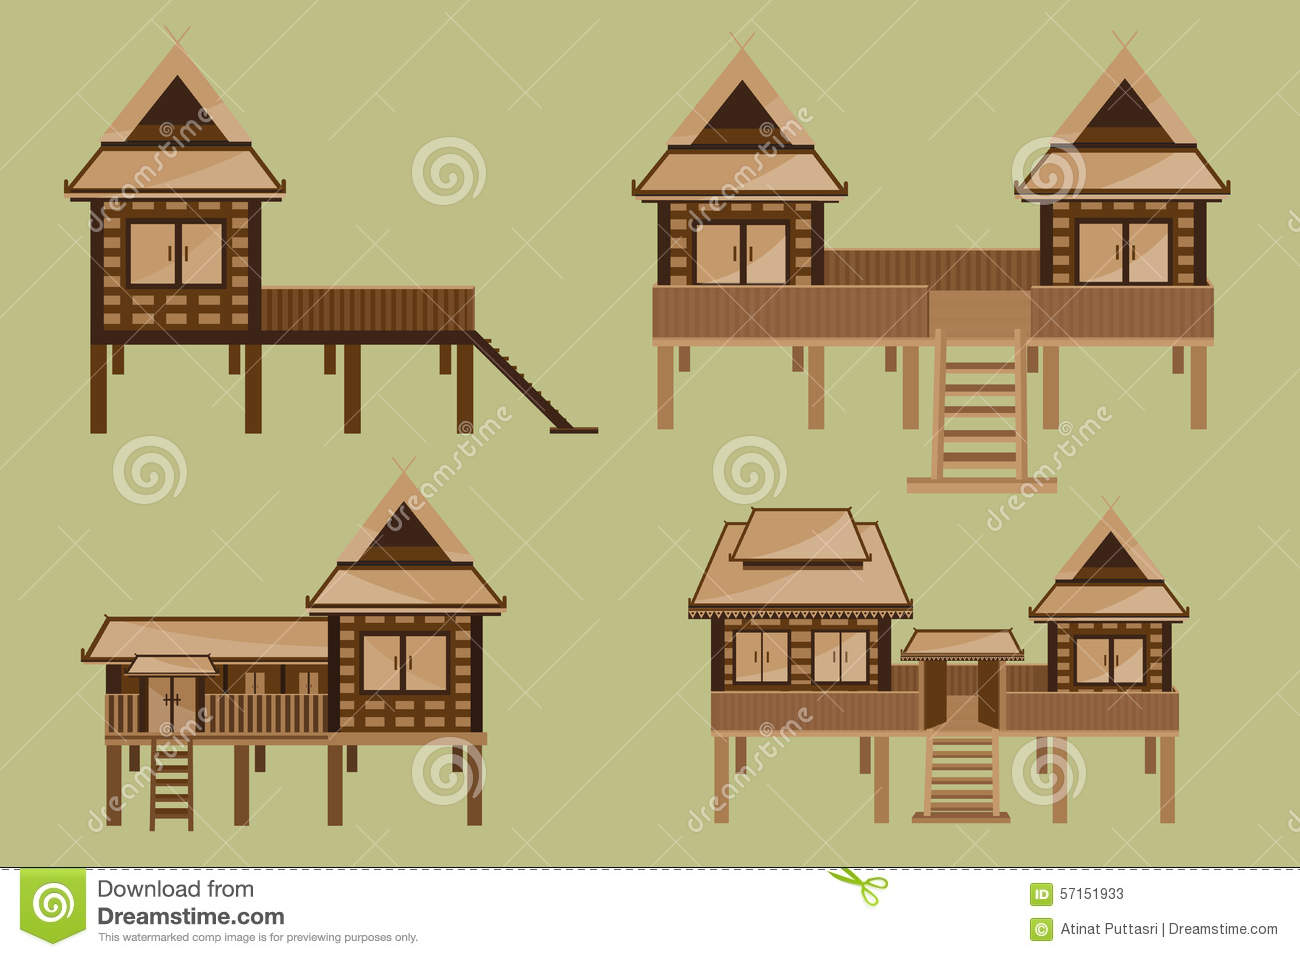 Thai house design stock vector image 57151933 for Home architecture design online